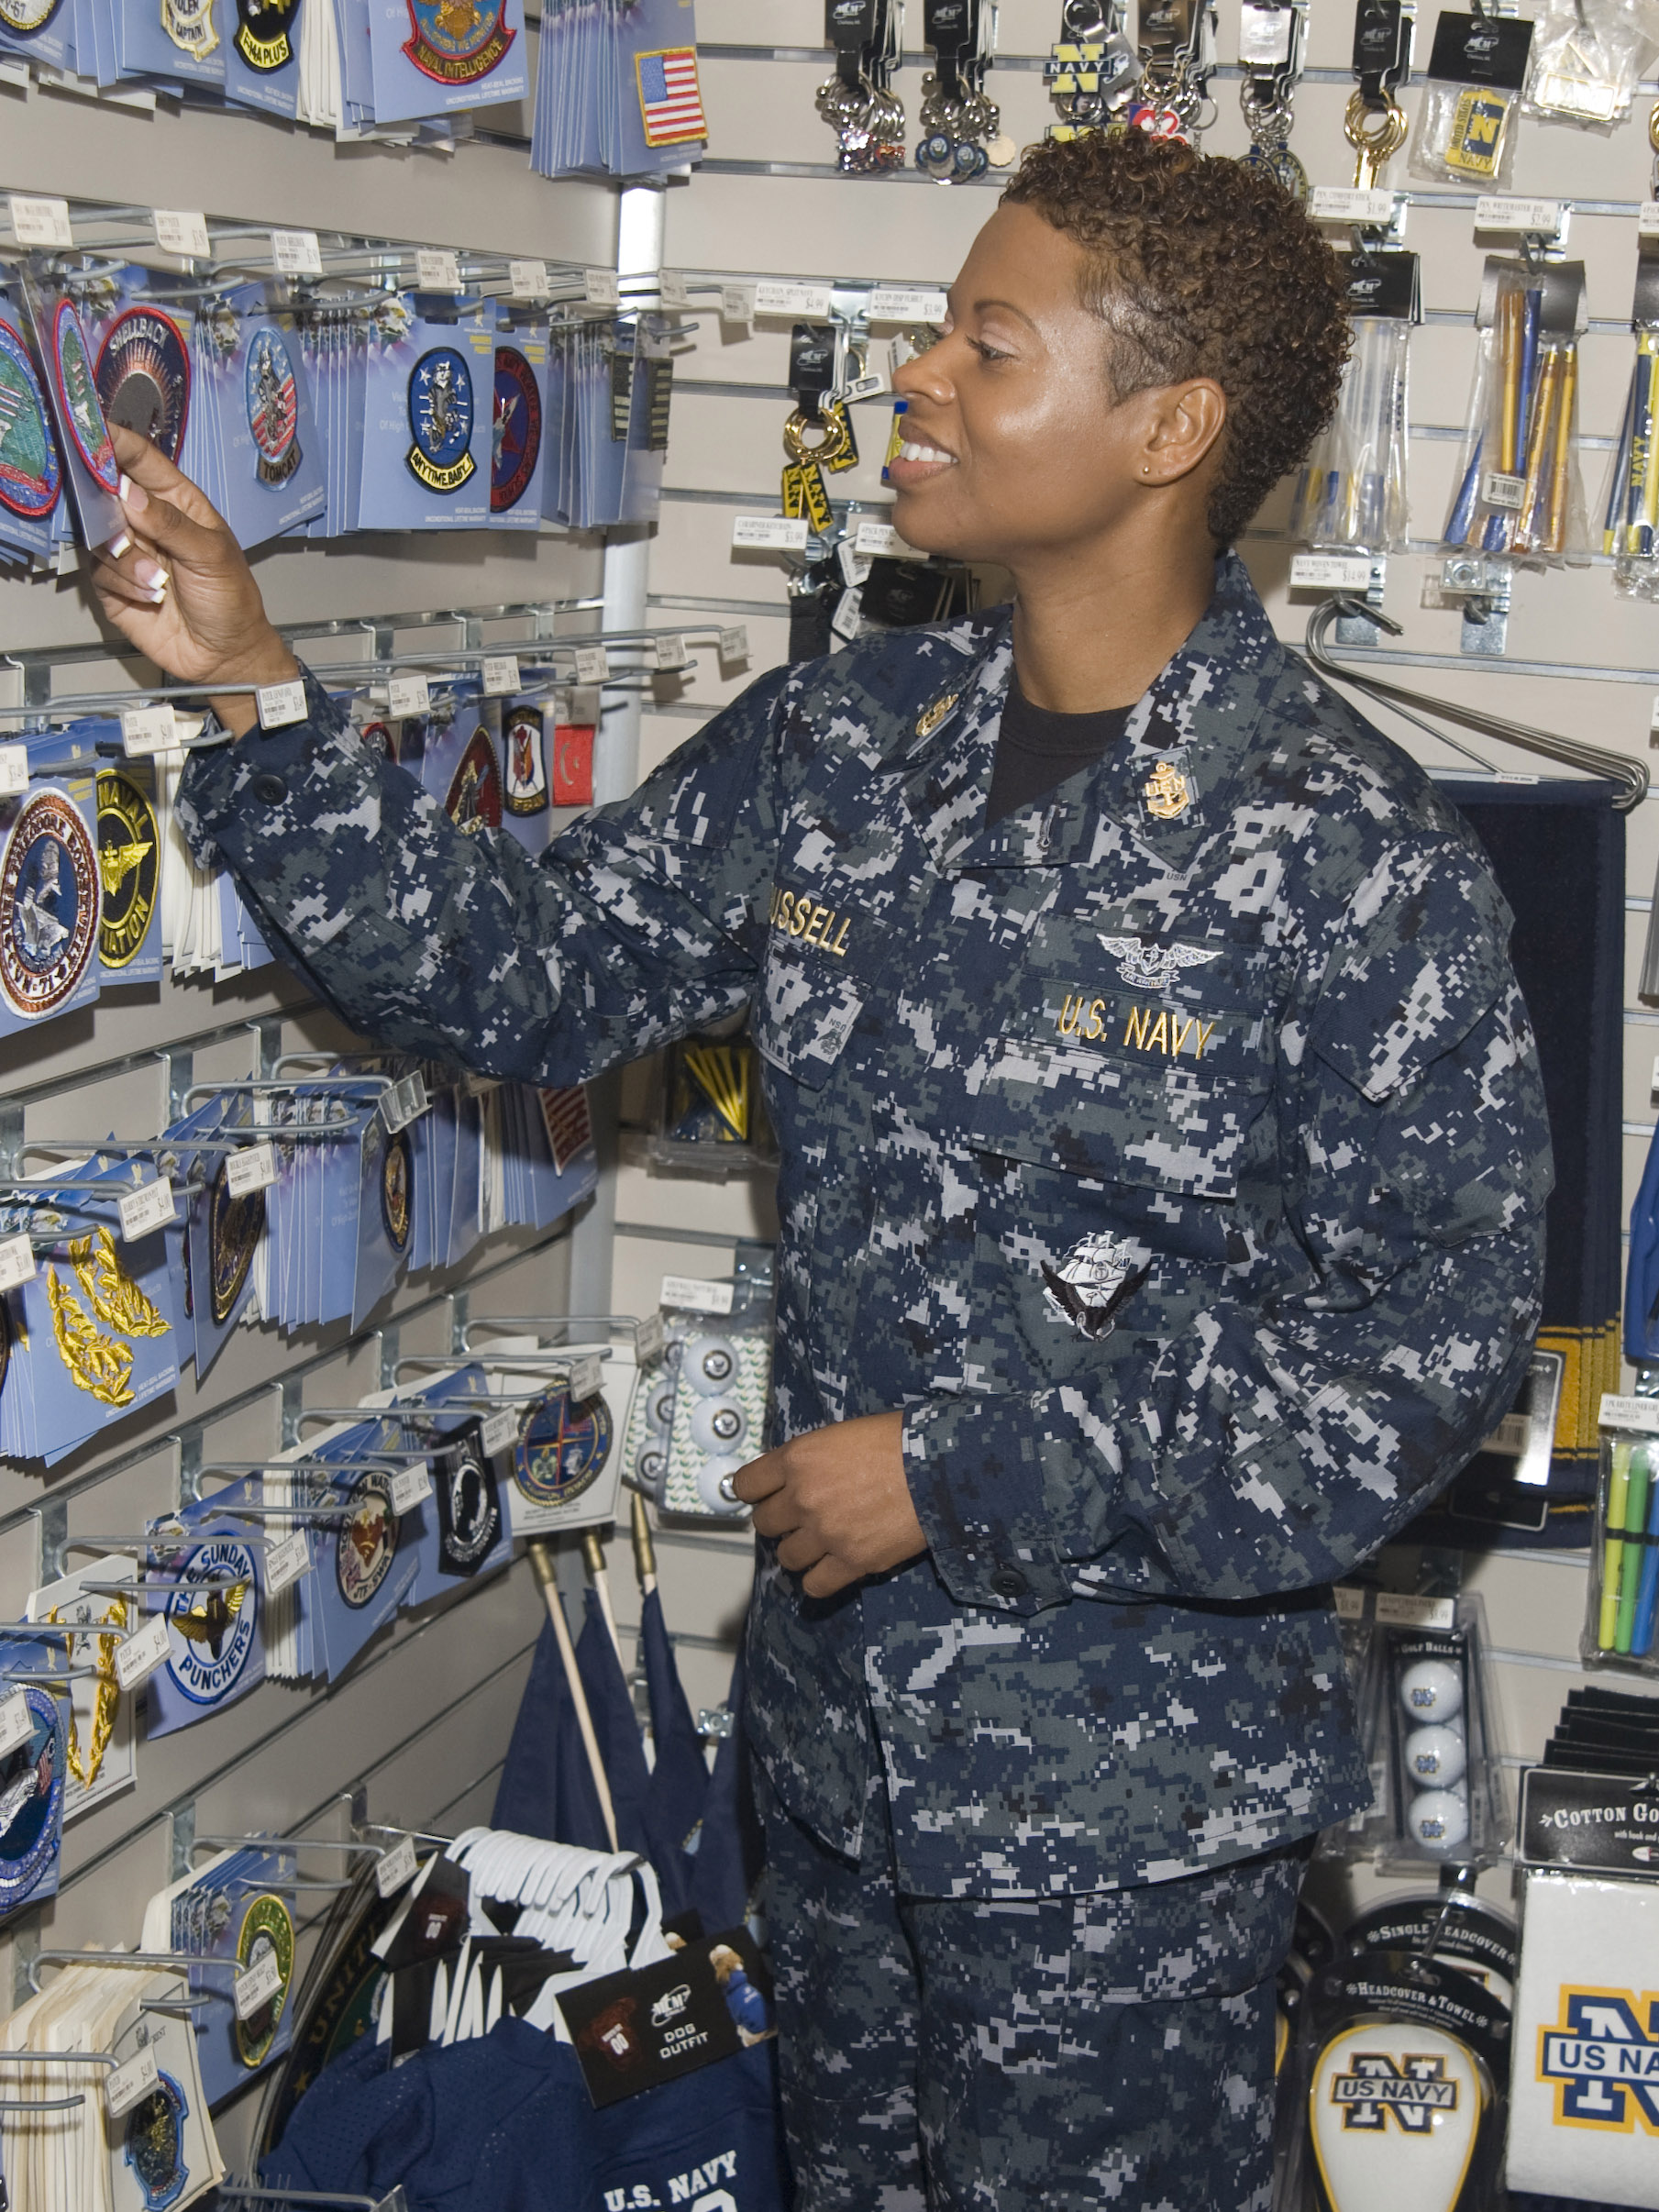 ... Navy working uniform (NWU) while shopping at the Naval Air Station